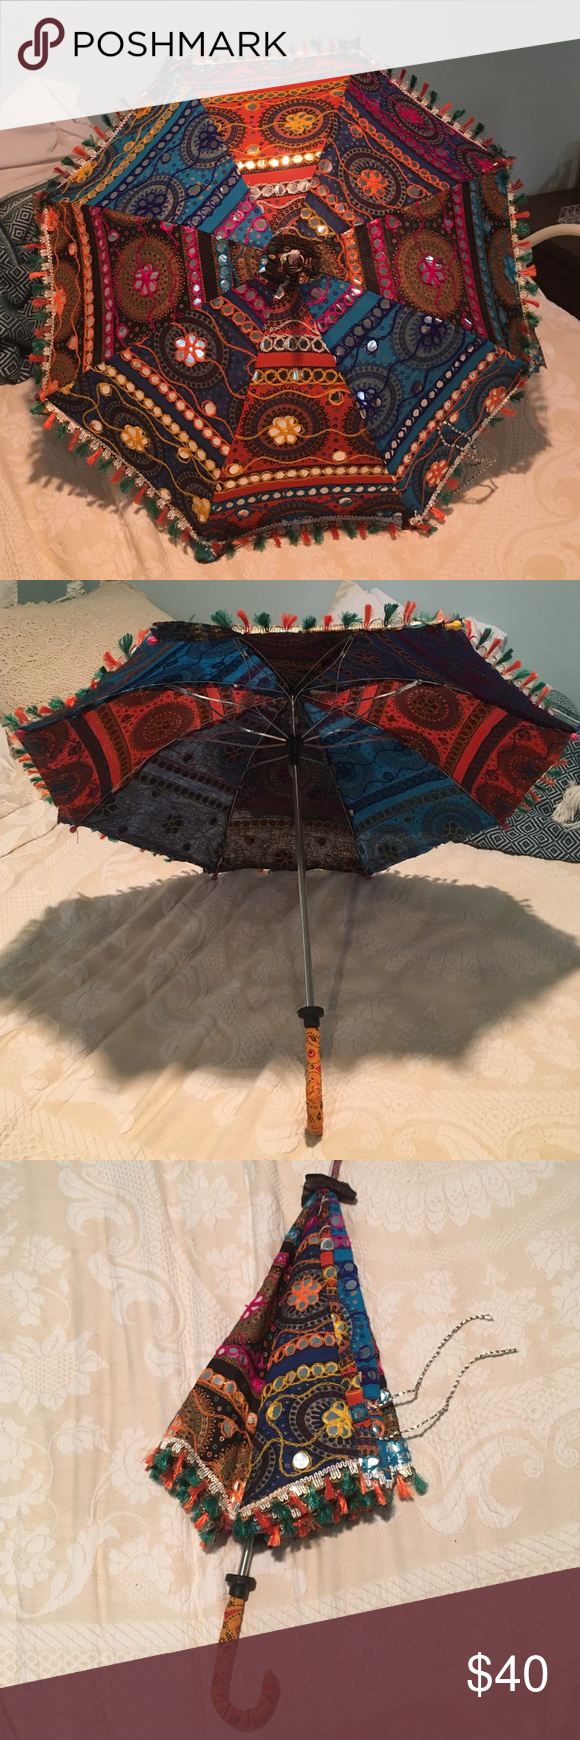 """Traditional Indian umbrella 13"""" of umbrella in length, pole is about 24"""" in length. Super cute for bedroom decoration! I had it in the upper corner of my room for a while! Adorable and hard to get them not broken. They are often shipped online from sketchy places and arrive broken (trust me). Anthropologie for views and similar style! Anthropologie Accessories Umbrellas"""